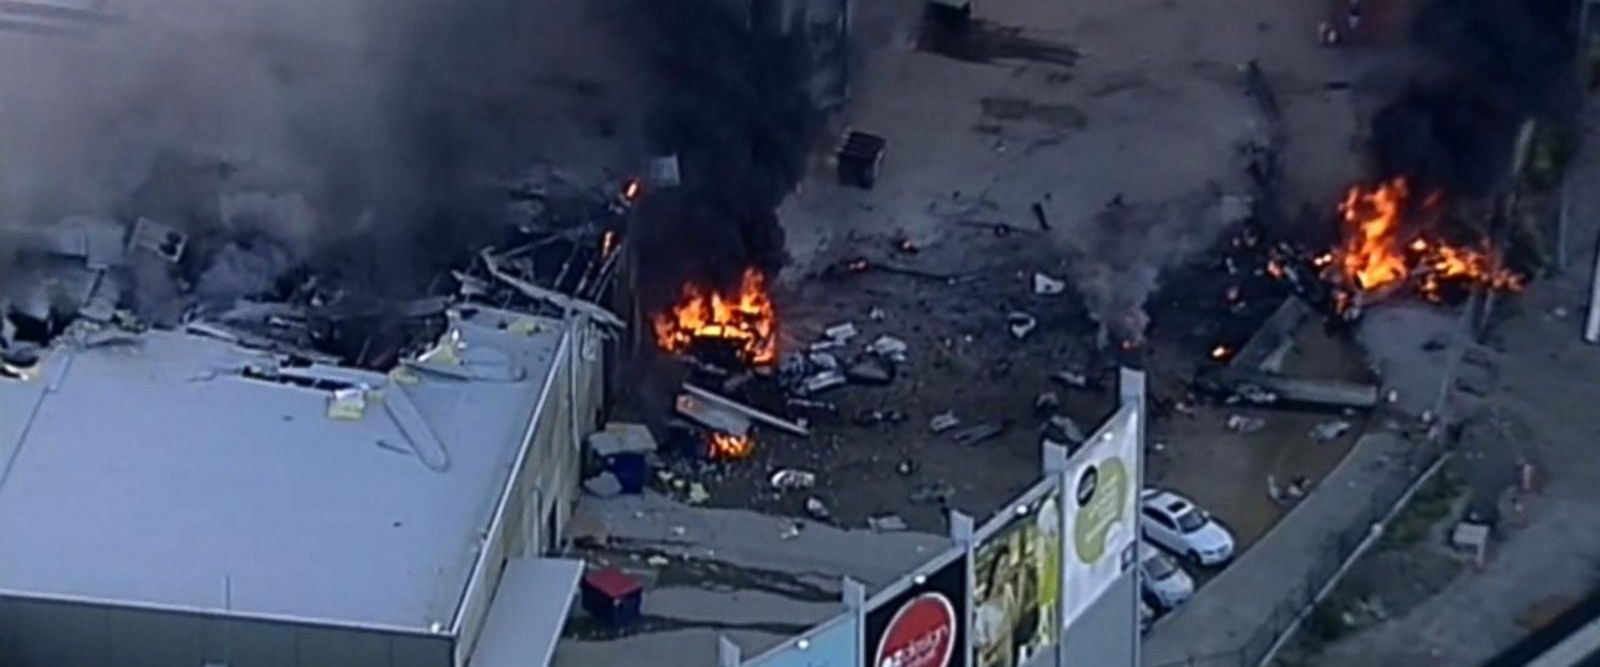 VIDEO: Pilot in deadly Australian plane crash issued distress call